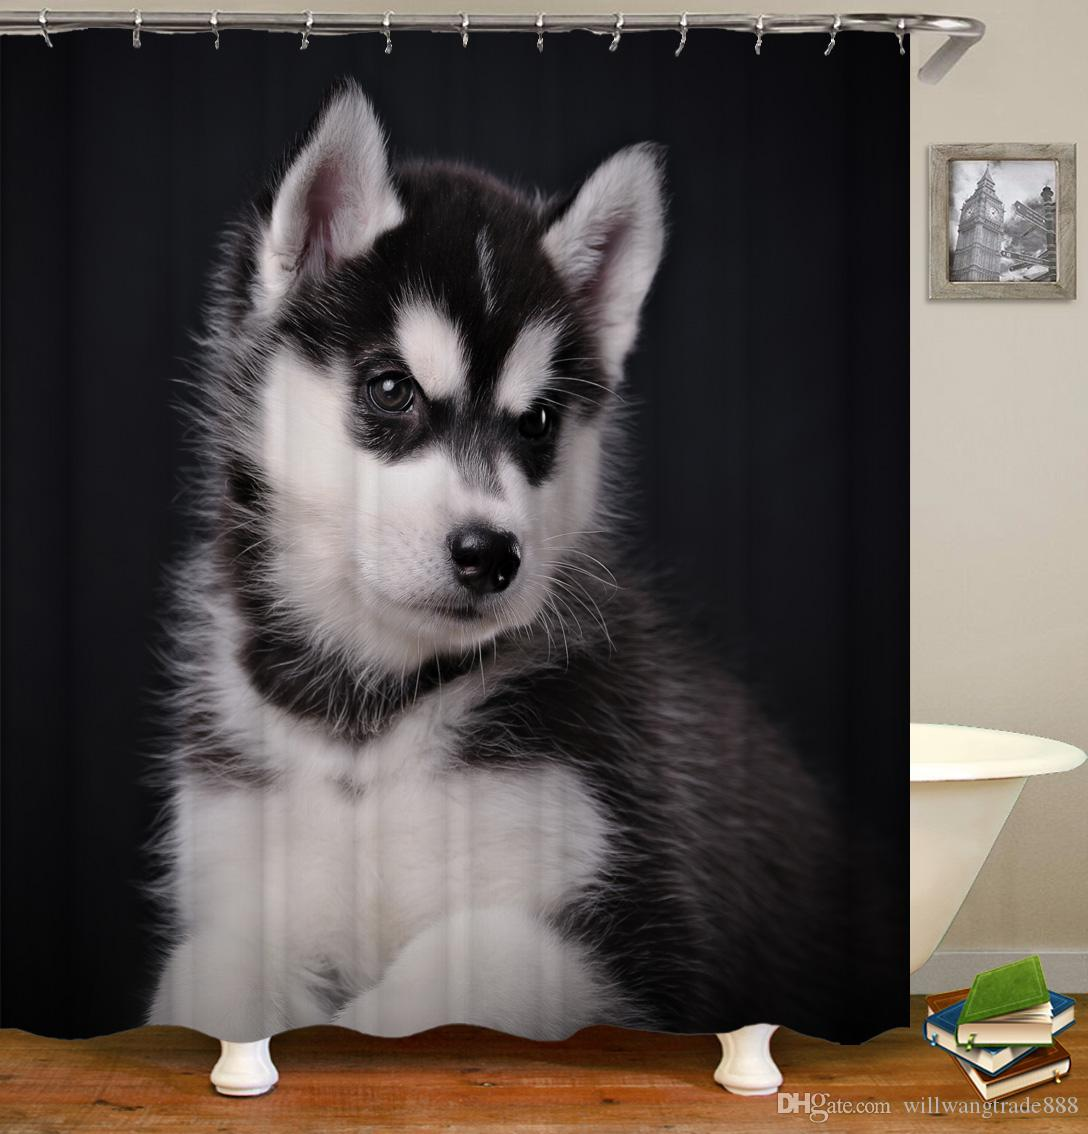 Waterproof Cute Pretty Pet Army Dogs And Cats Digital Printing Bathroom Shower Window Curtain With Hooks 71x71inch